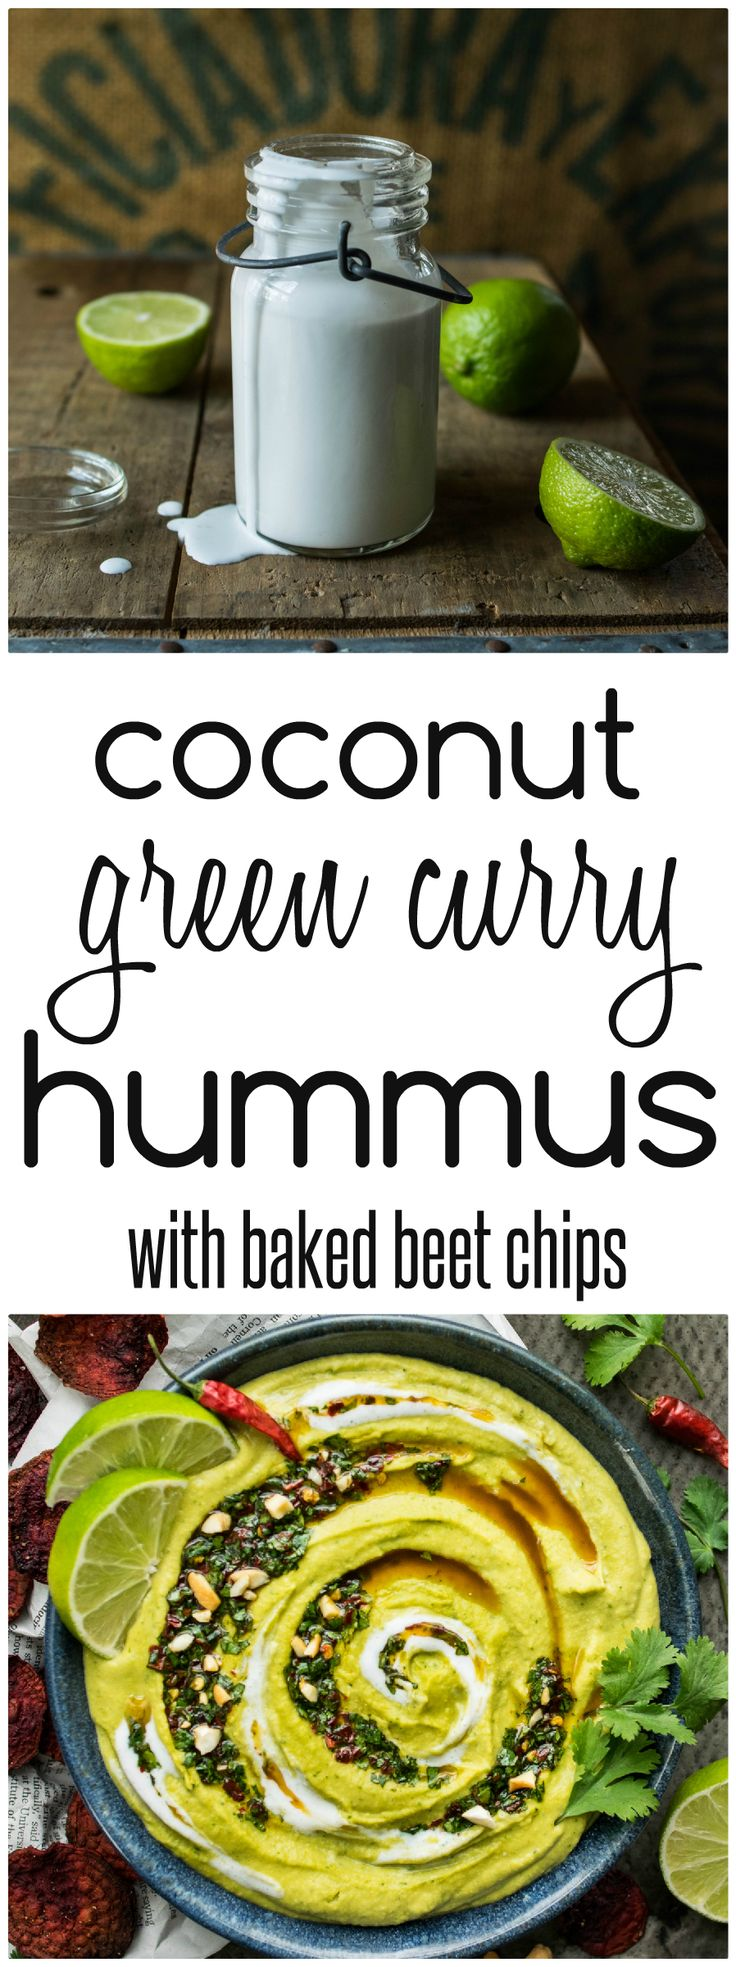 Coconut Green Curry Hummus with Baked Beet Chips from Reclaiming Yesterday